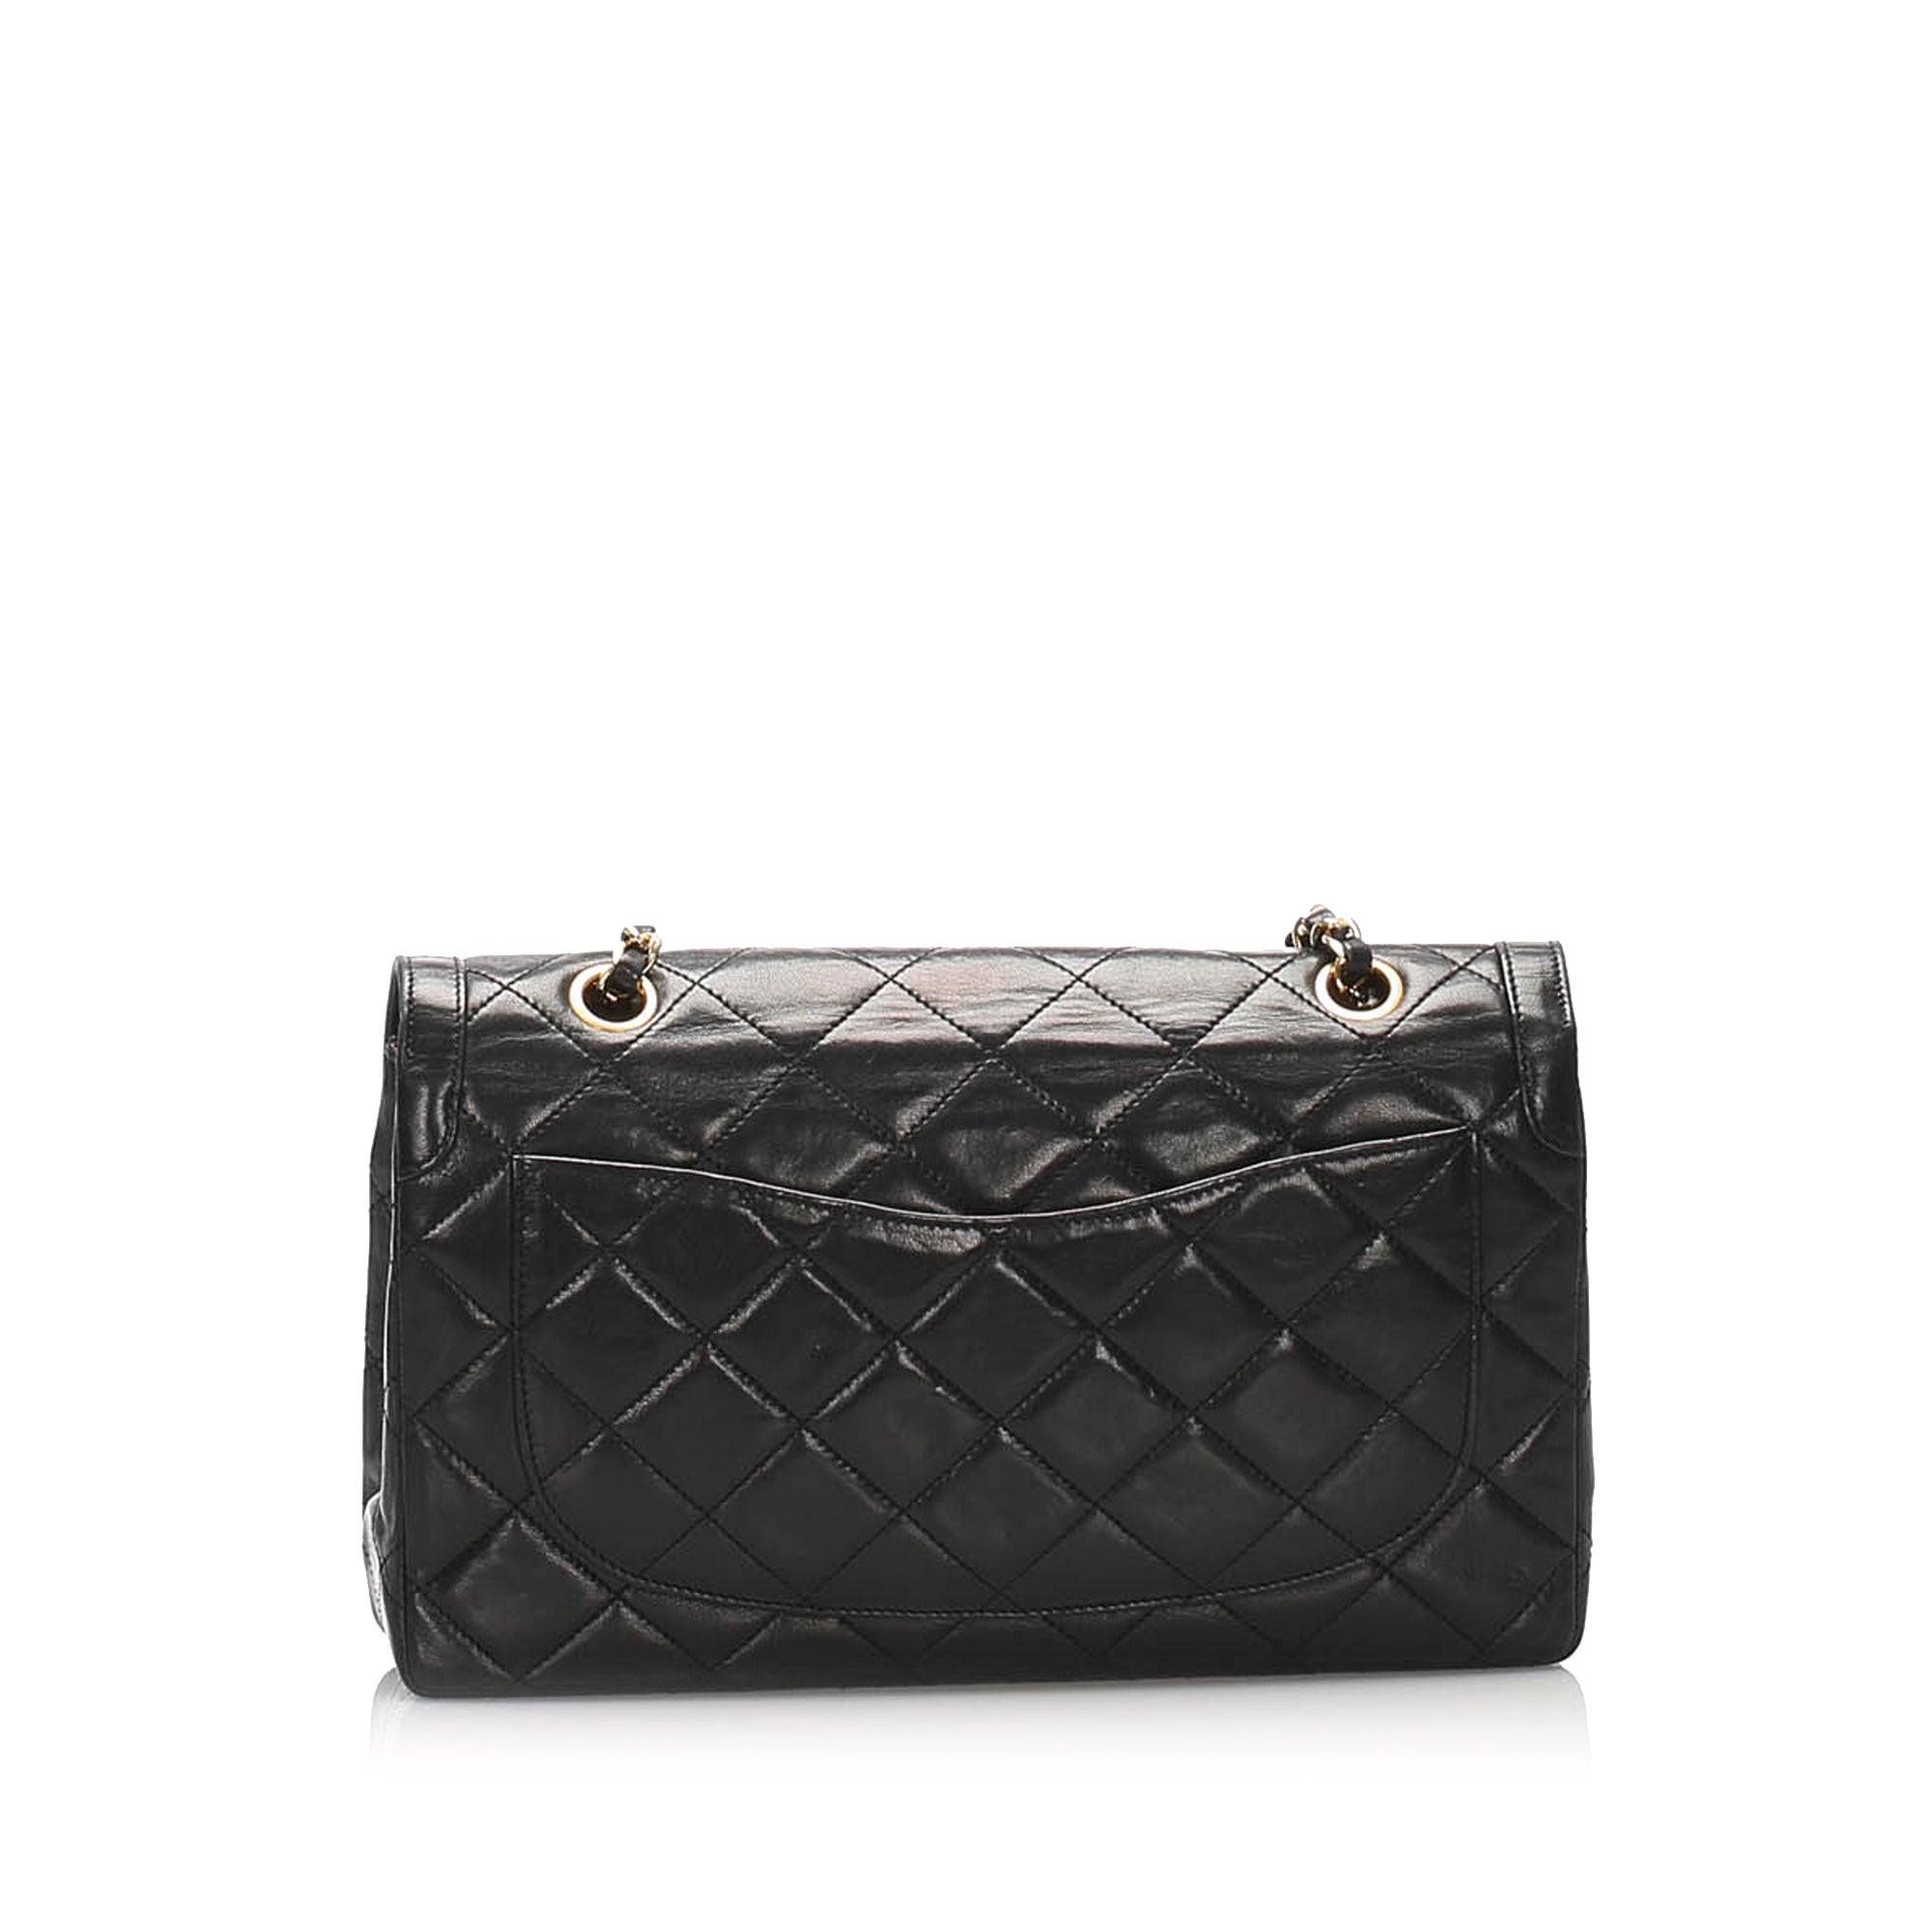 Chanel Black CC Lambskin Leather Flap Bag